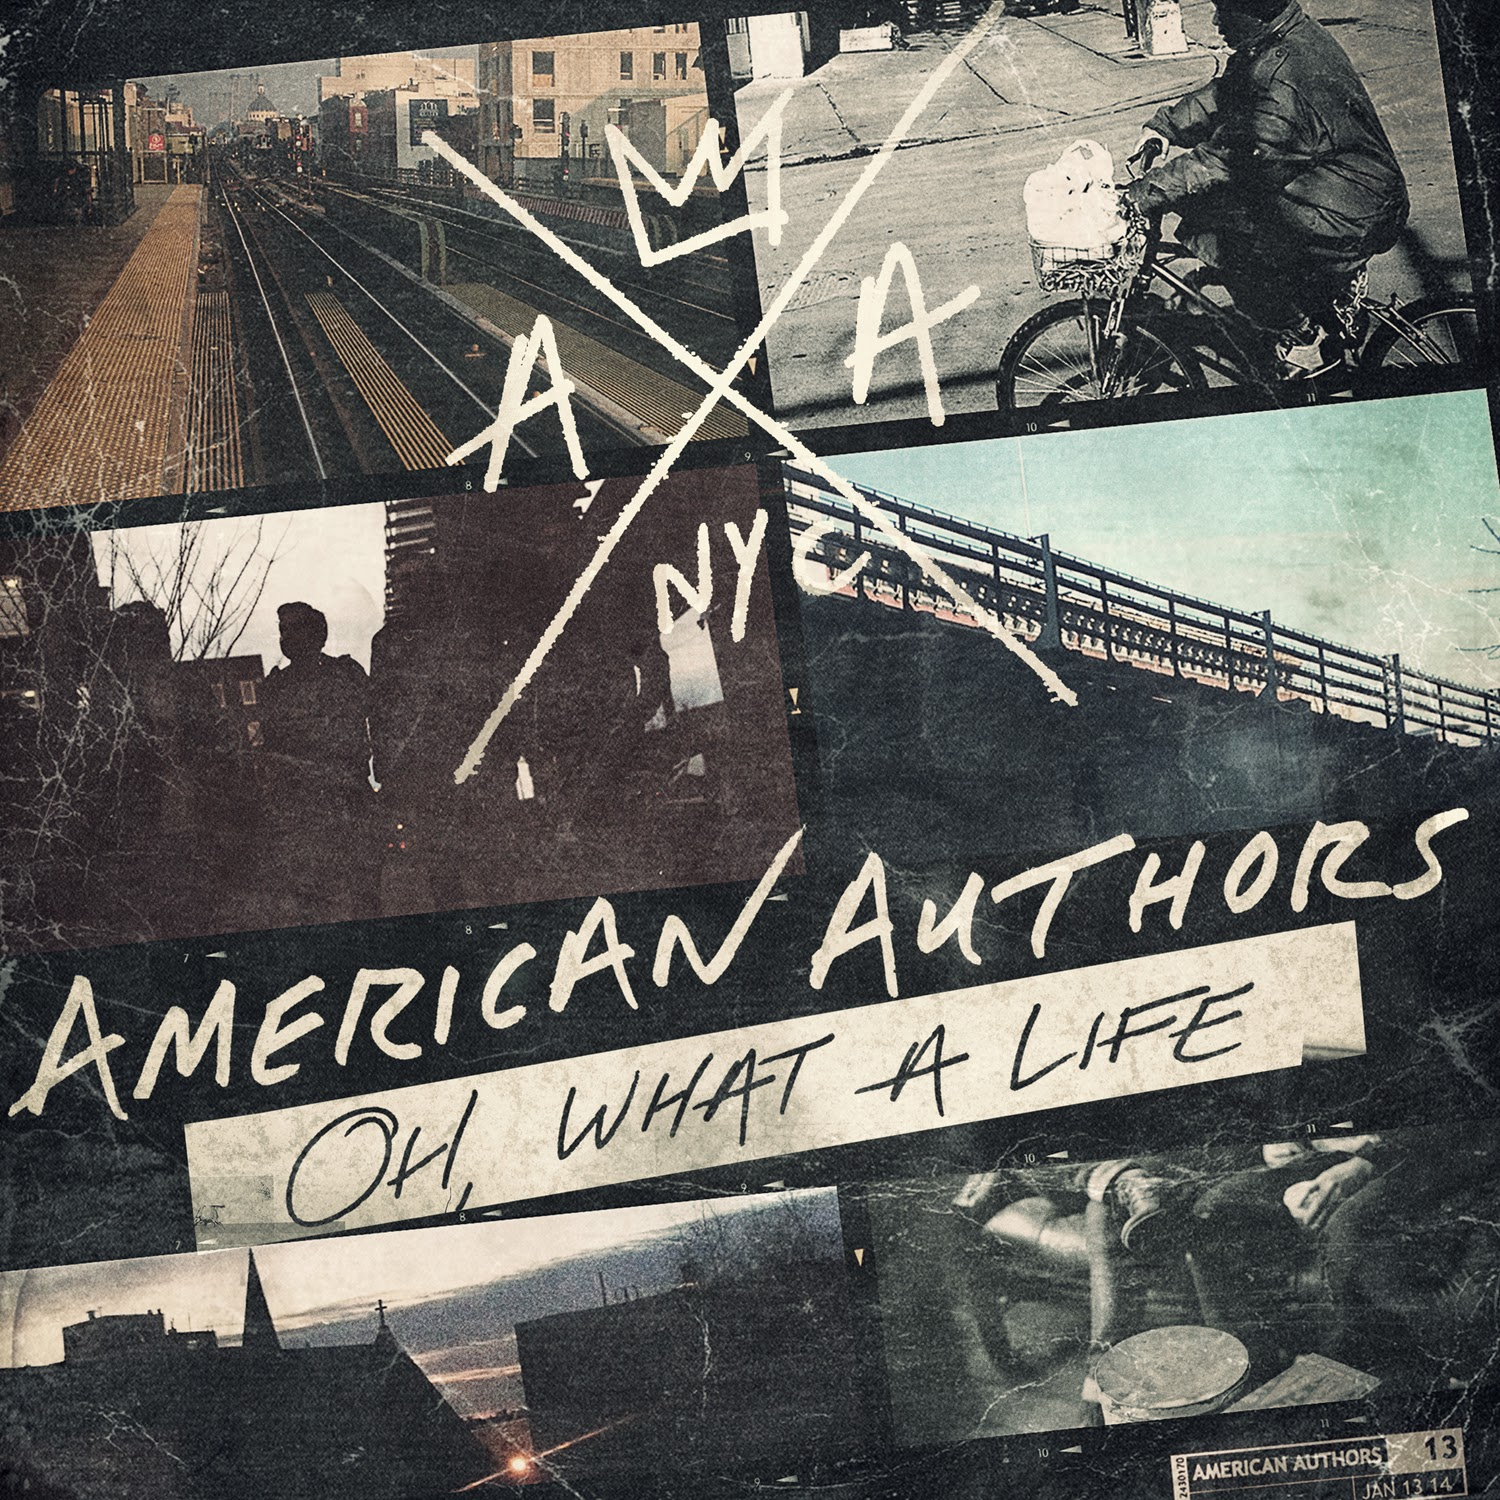 Best Day Of My Life by American Authors - Maddox Tan